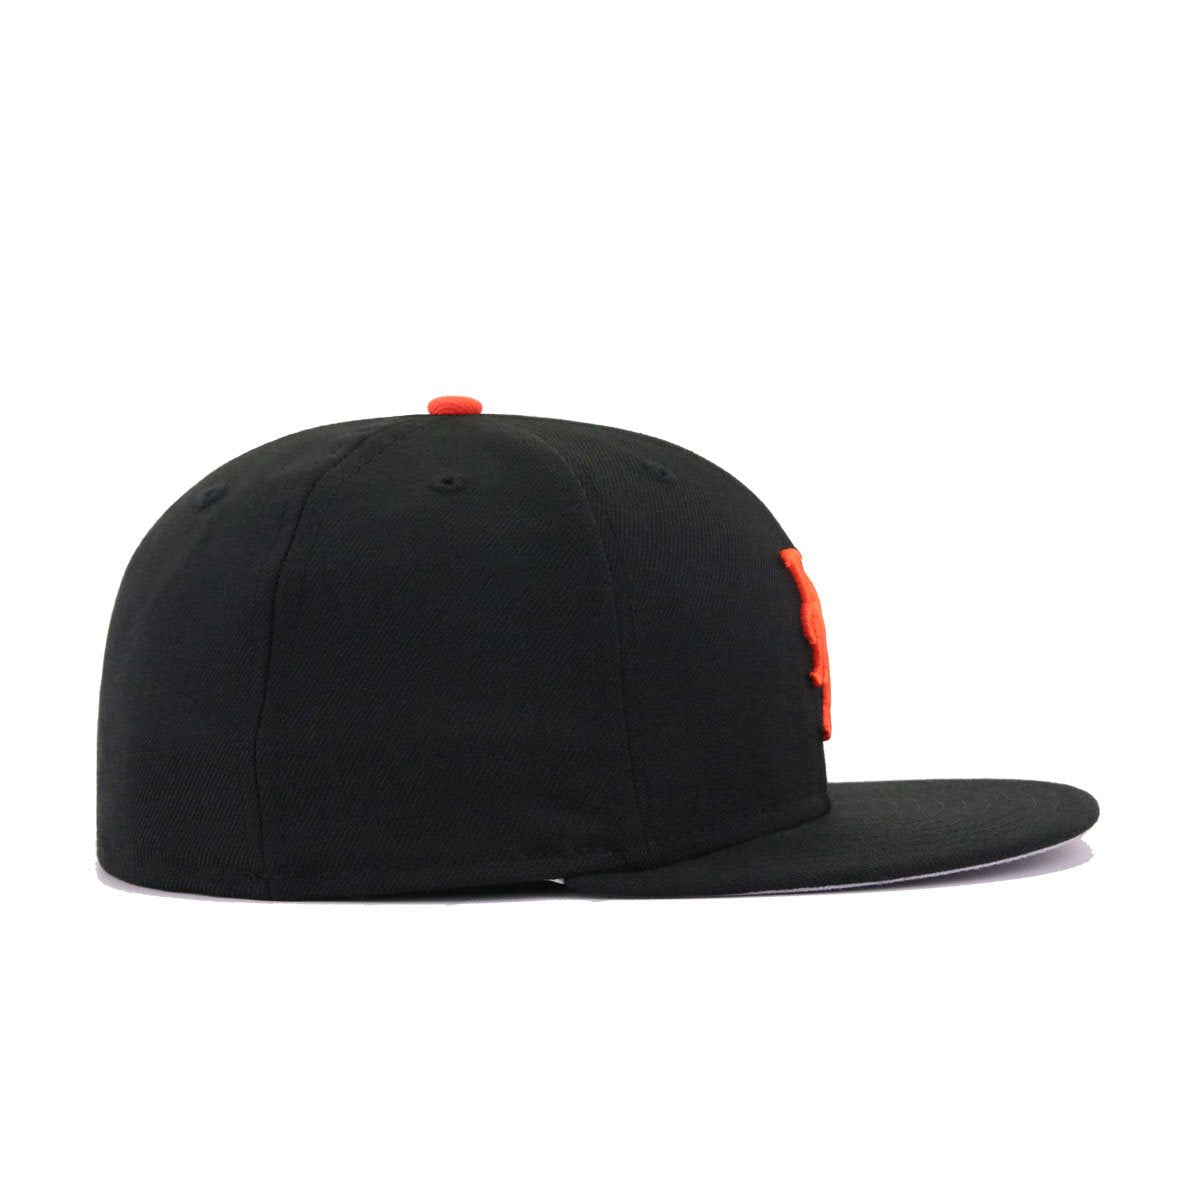 New York Giants Black 1954 World Series Cooperstown New Era 59Fifty Fitted